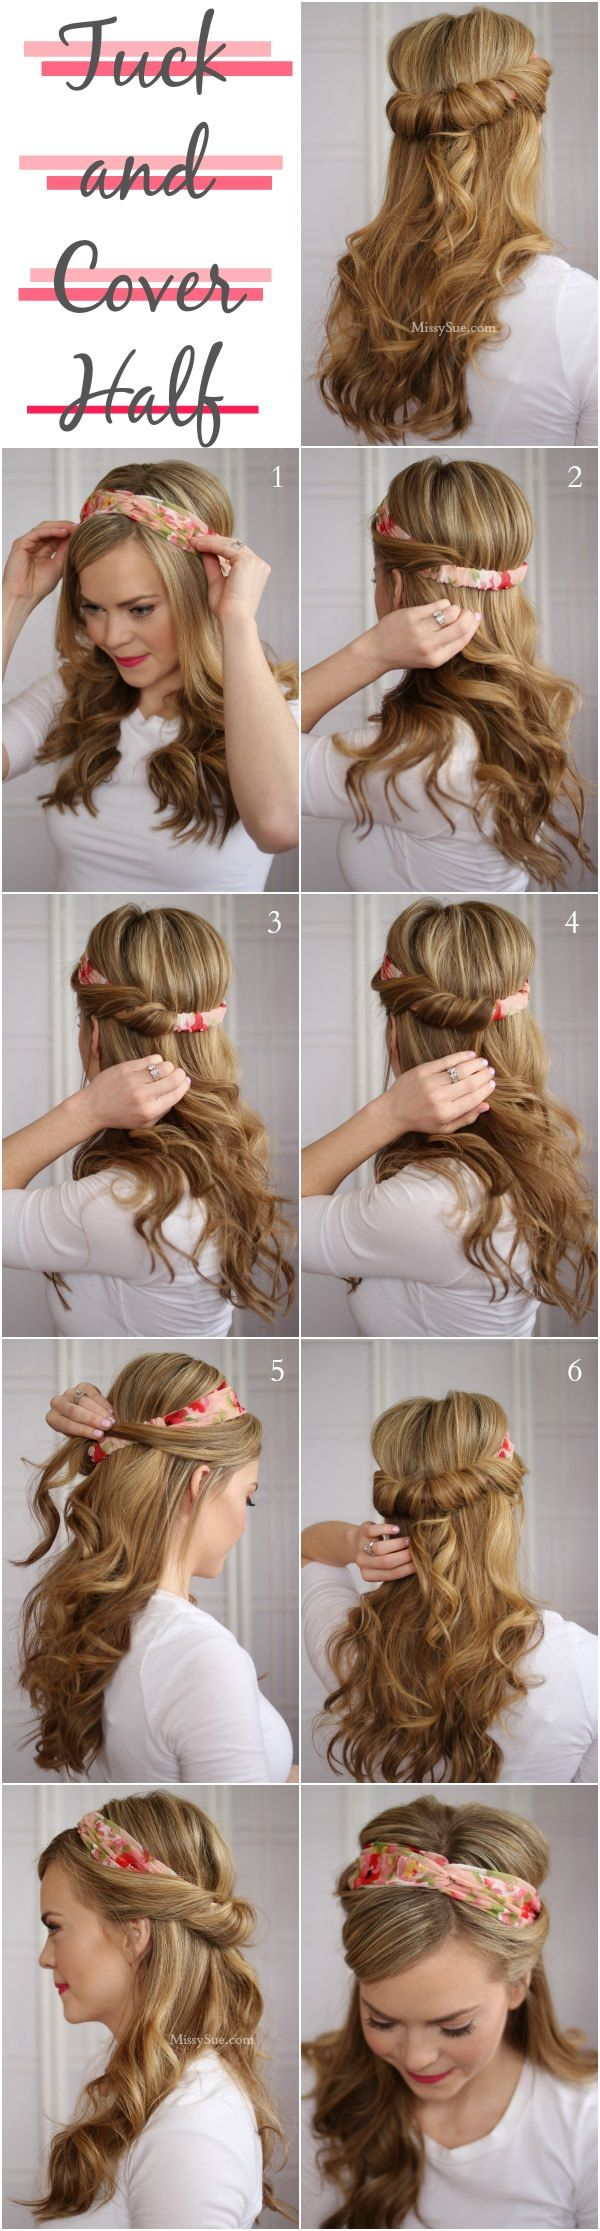 Us of cute hairstyles colors and advice projects to try